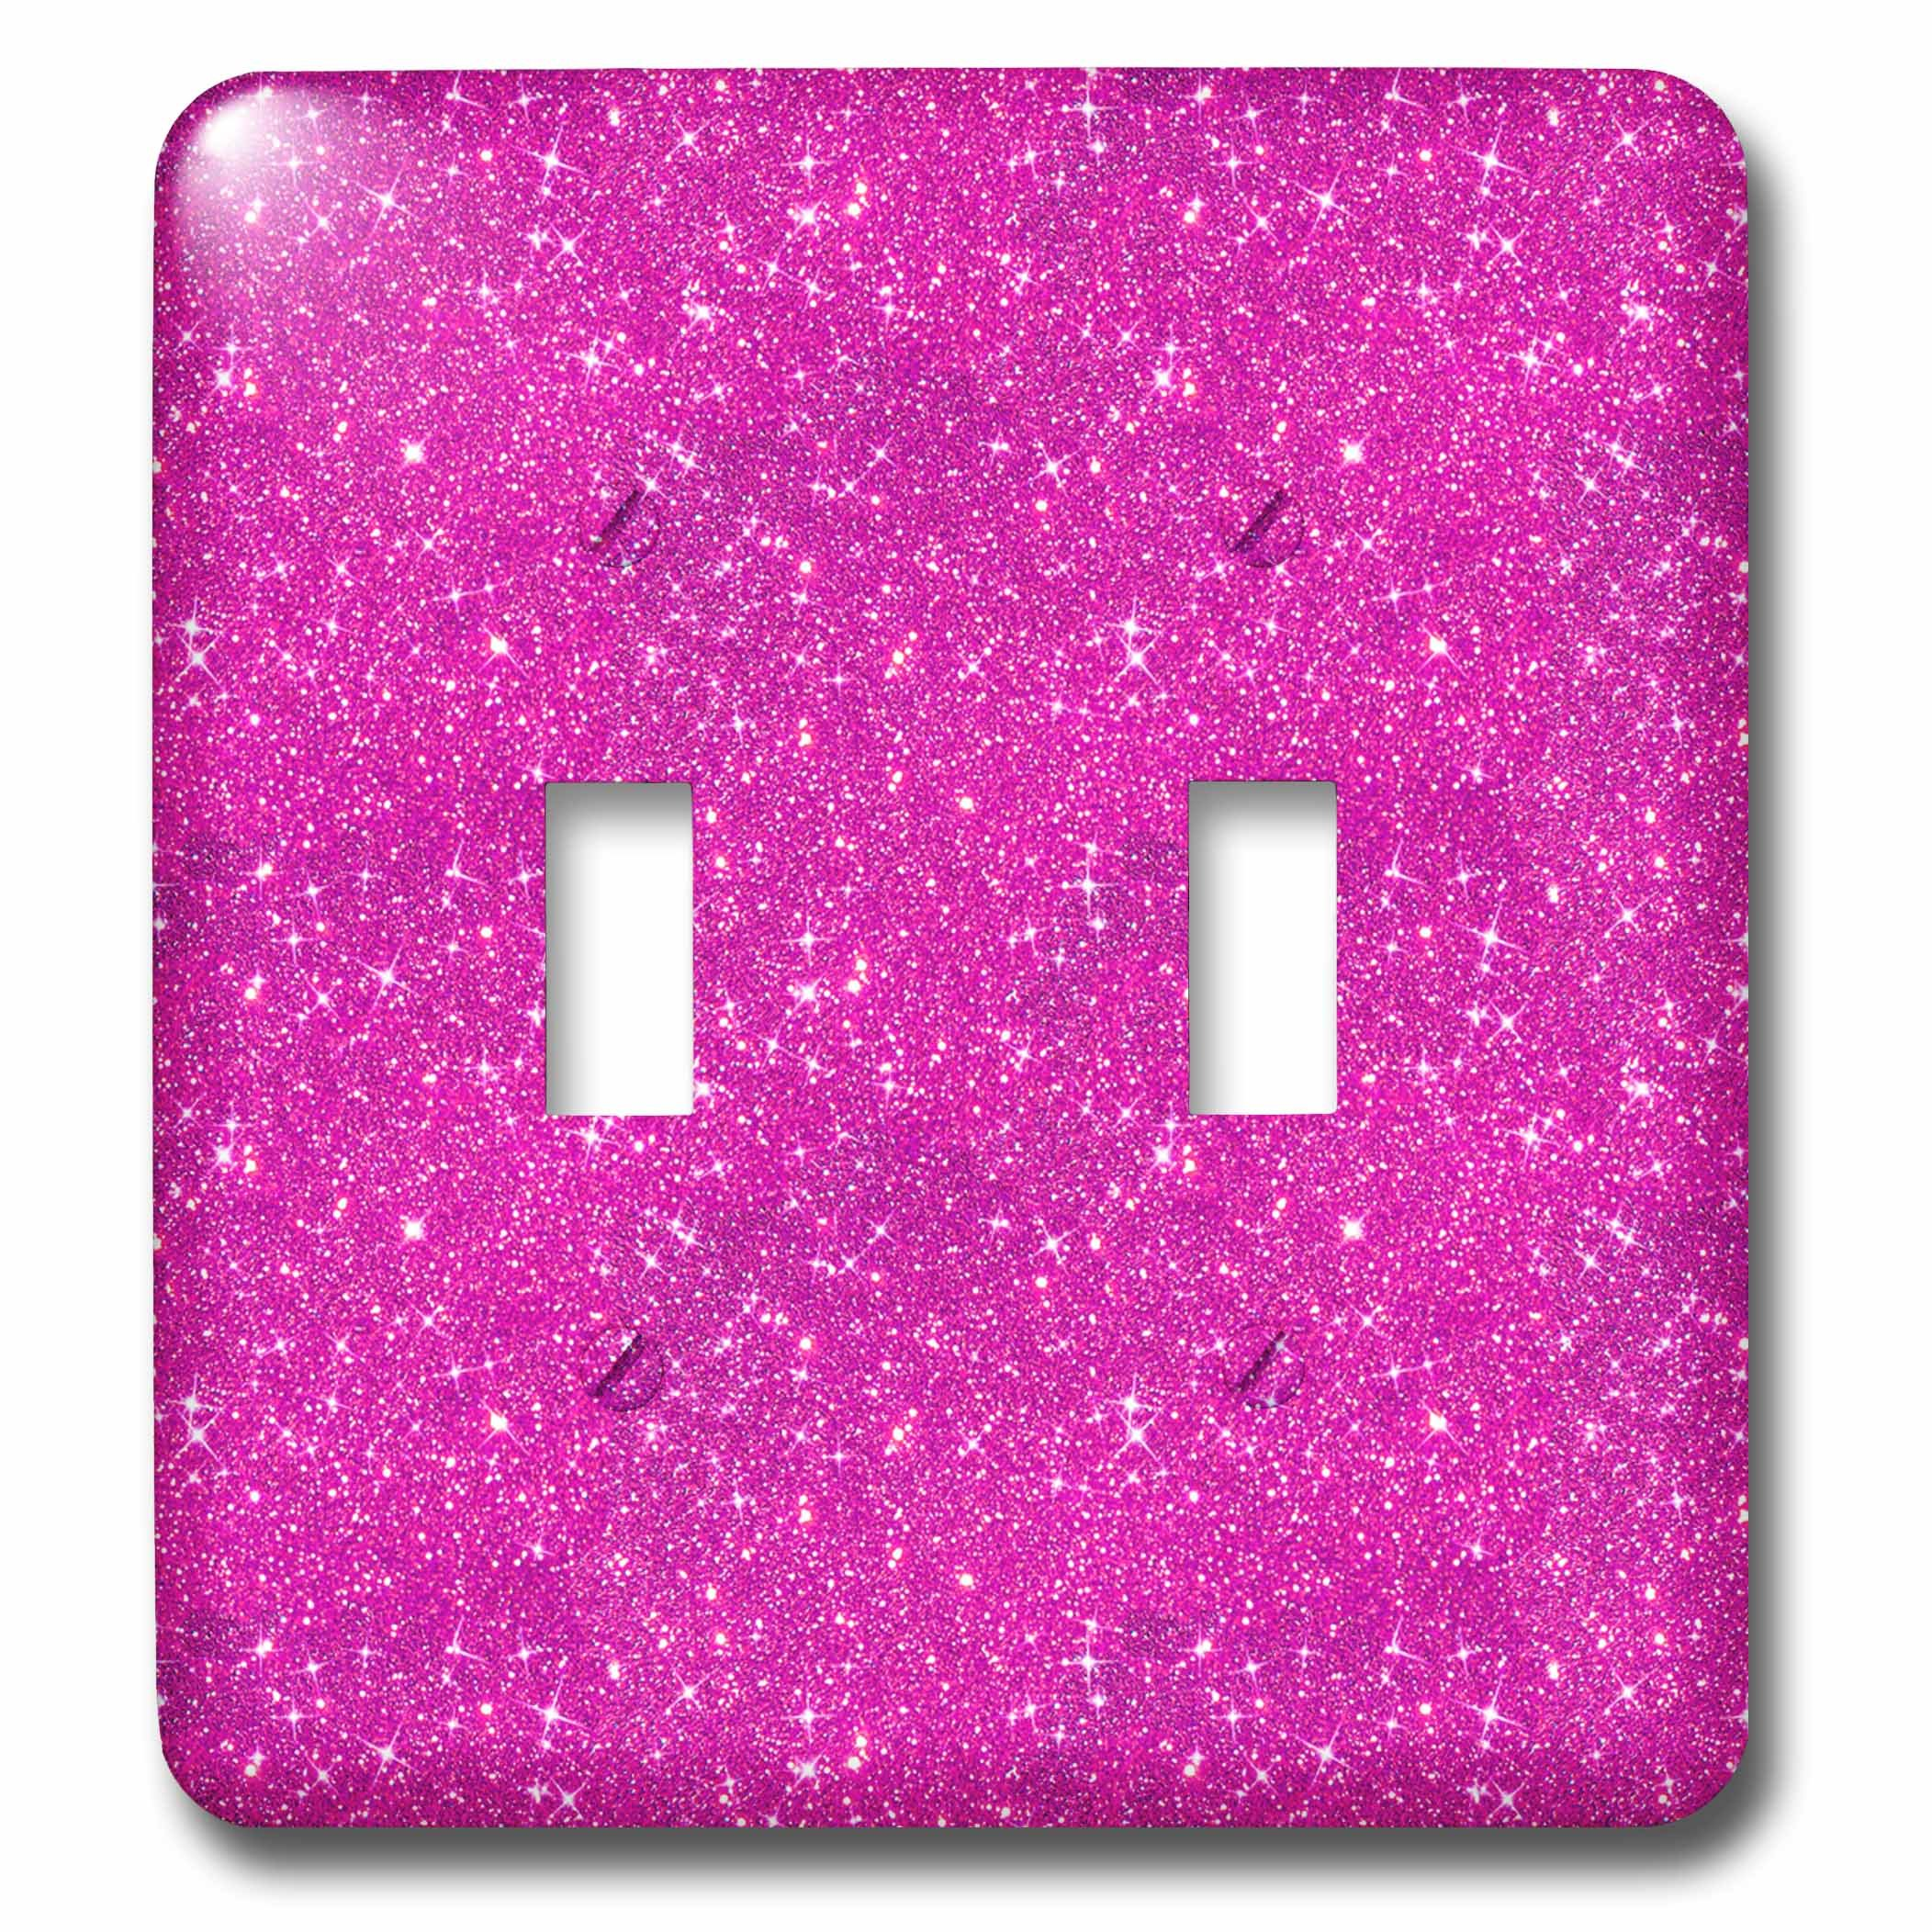 3dRose LSP_274956_2 Image of Sparkling Shiny Pink Luxury Elegant Mermaid Glitter Toggle Switch,